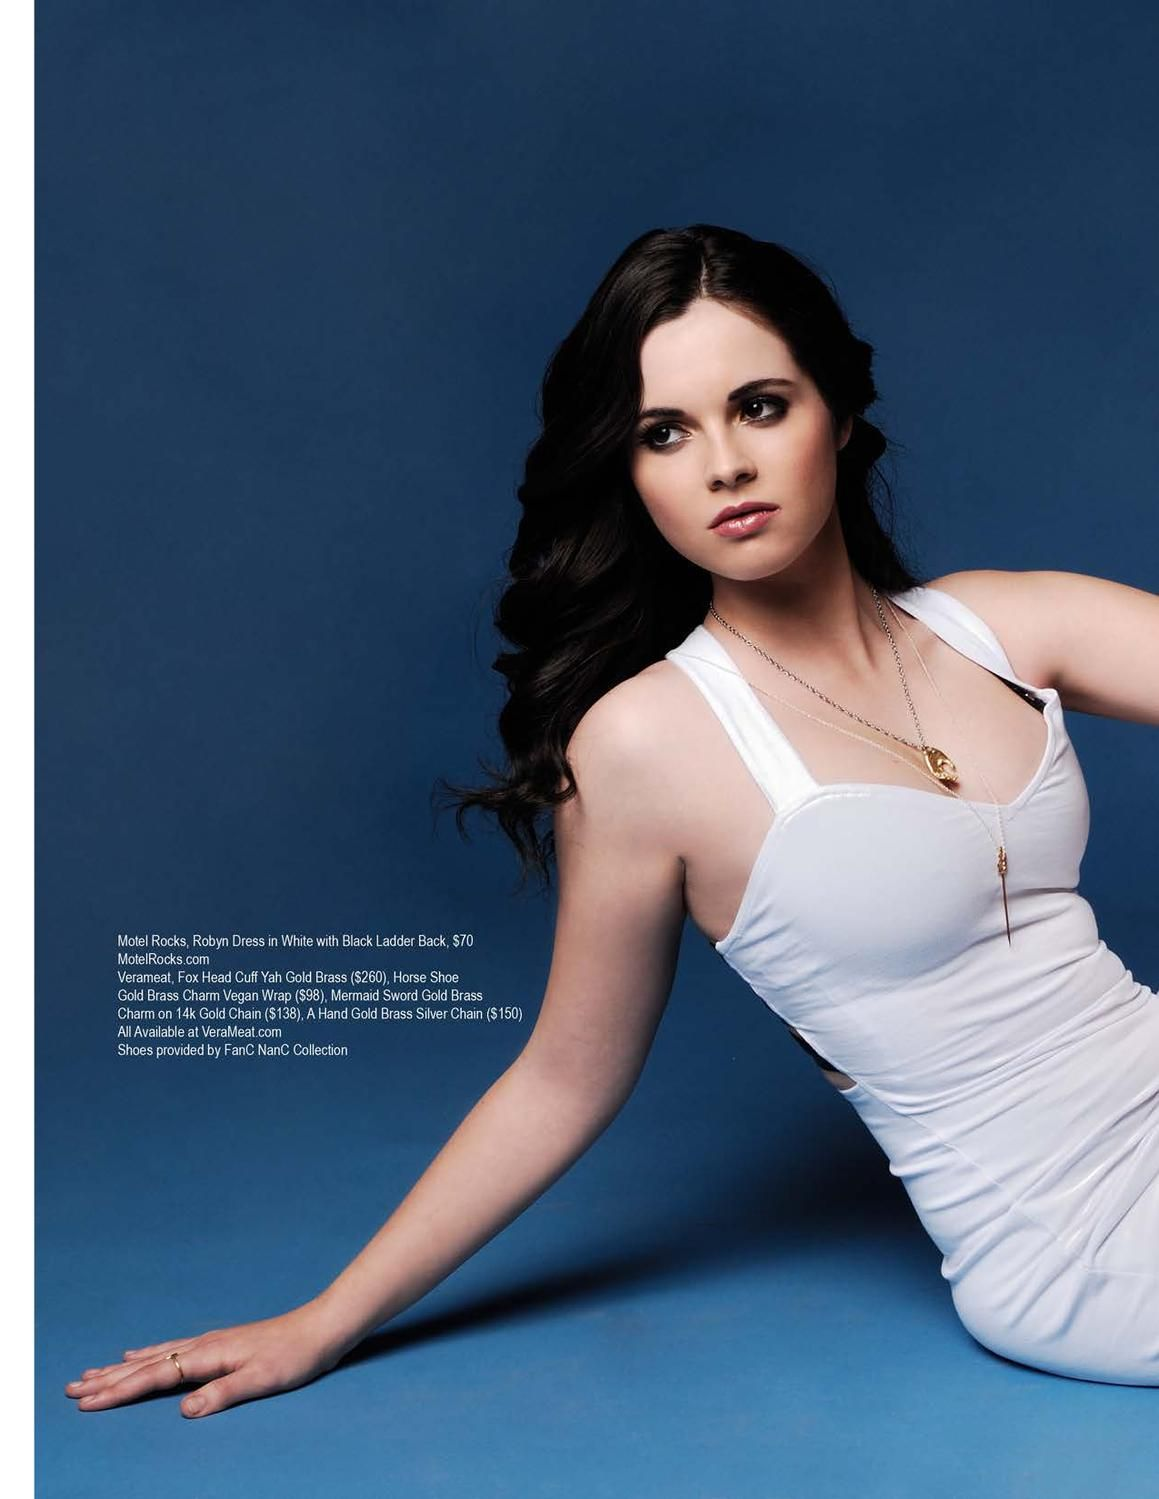 vanessa marano height weightvanessa marano and sean berdy, vanessa marano 2016, vanessa marano png, vanessa marano photos, vanessa marano and riker lynch, vanessa marano filmography, vanessa marano parenthood, vanessa marano height weight, vanessa marano natural hair, vanessa marano snapchat, vanessa marano instagram, vanessa marano wikipedia, vanessa marano singing, vanessa marano boyfriend, vanessa marano lost weight, vanessa marano healthy celeb, vanessa marano facebook, vanessa marano sing, vanessa marano imdb, vanessa marano and laura marano interview